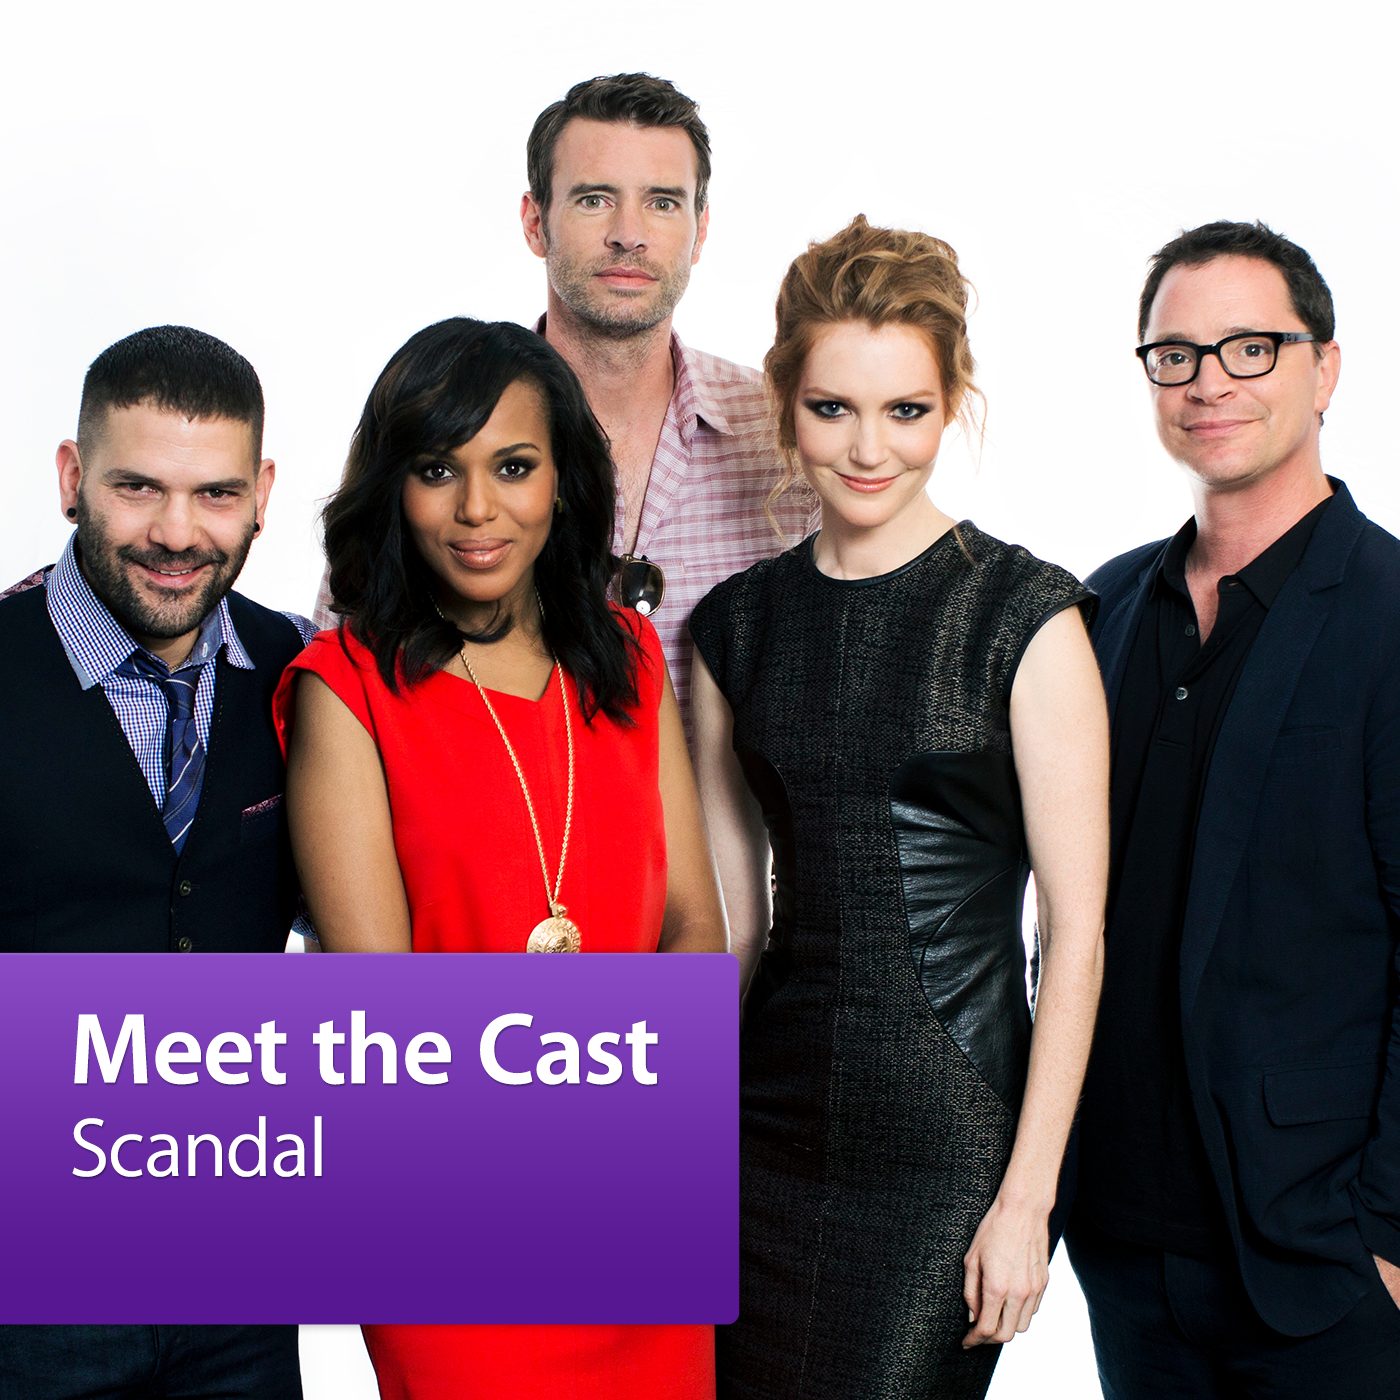 Scandal: Meet the Cast